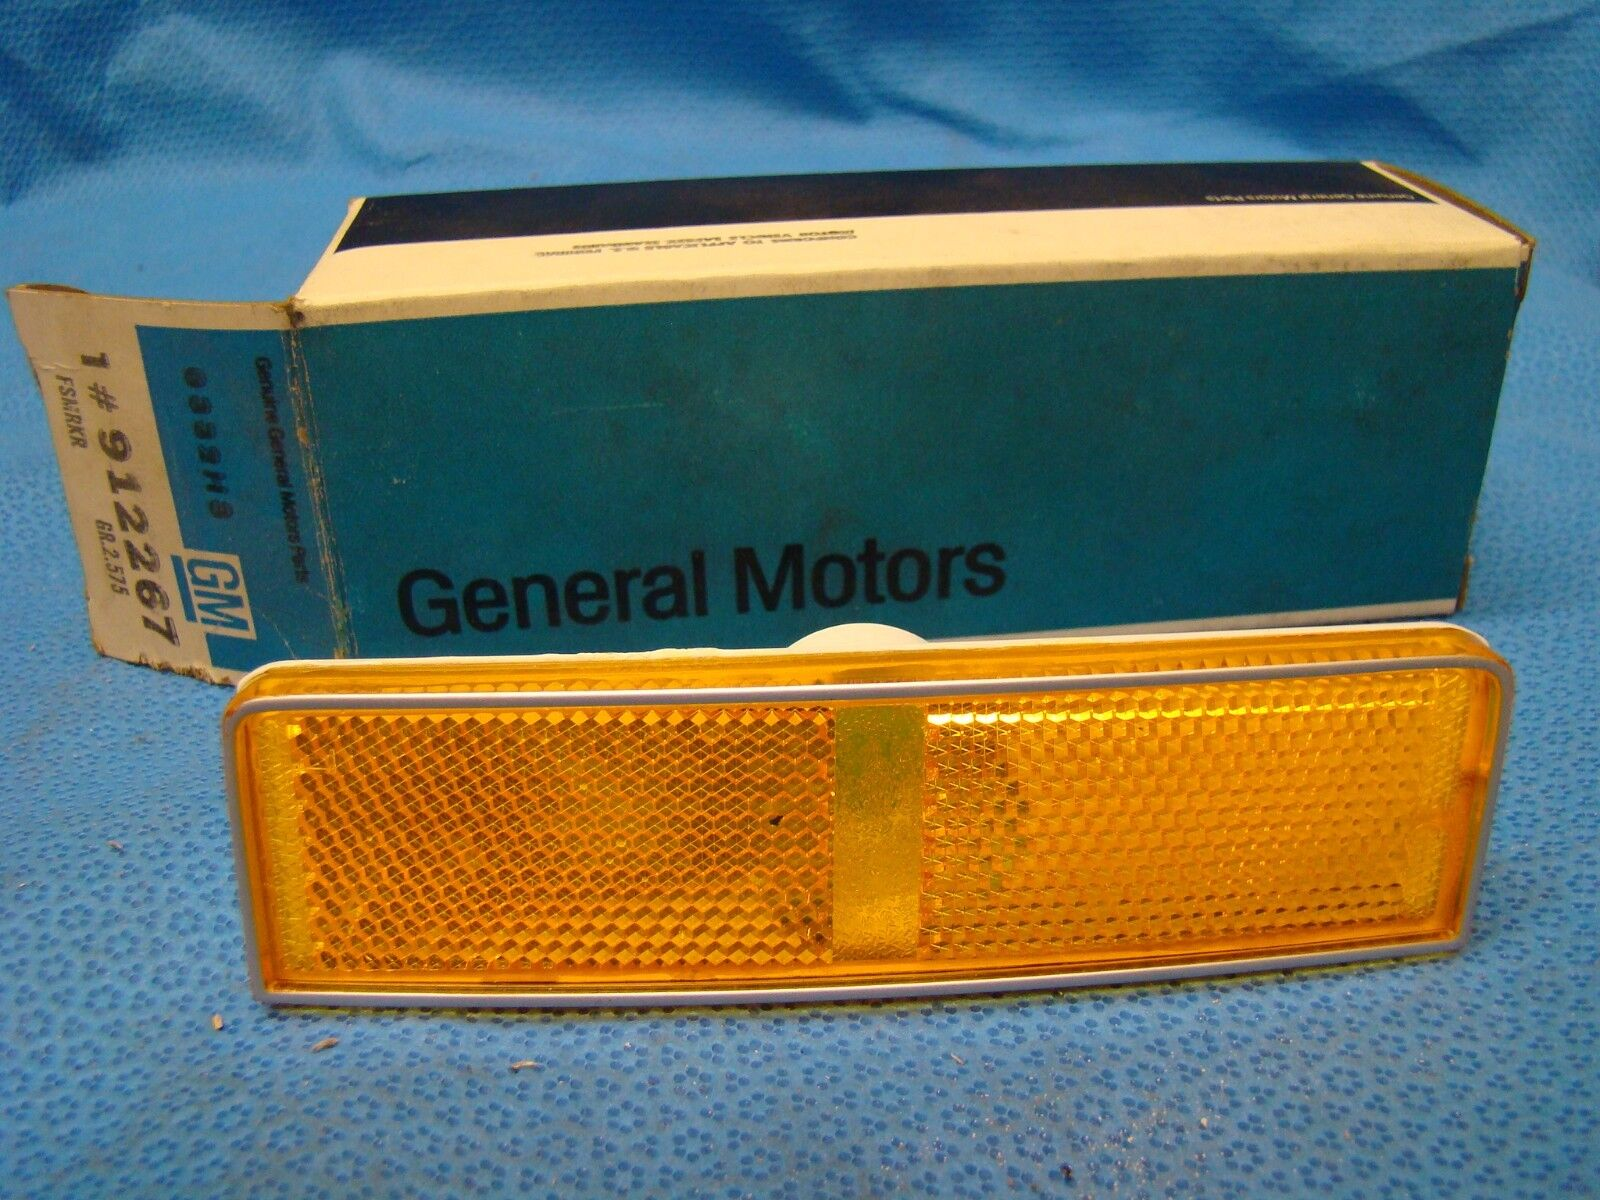 NOS 1974 Bonneville Catalina LEFT Front Marker Lamp Lens Light 912267 Genuine